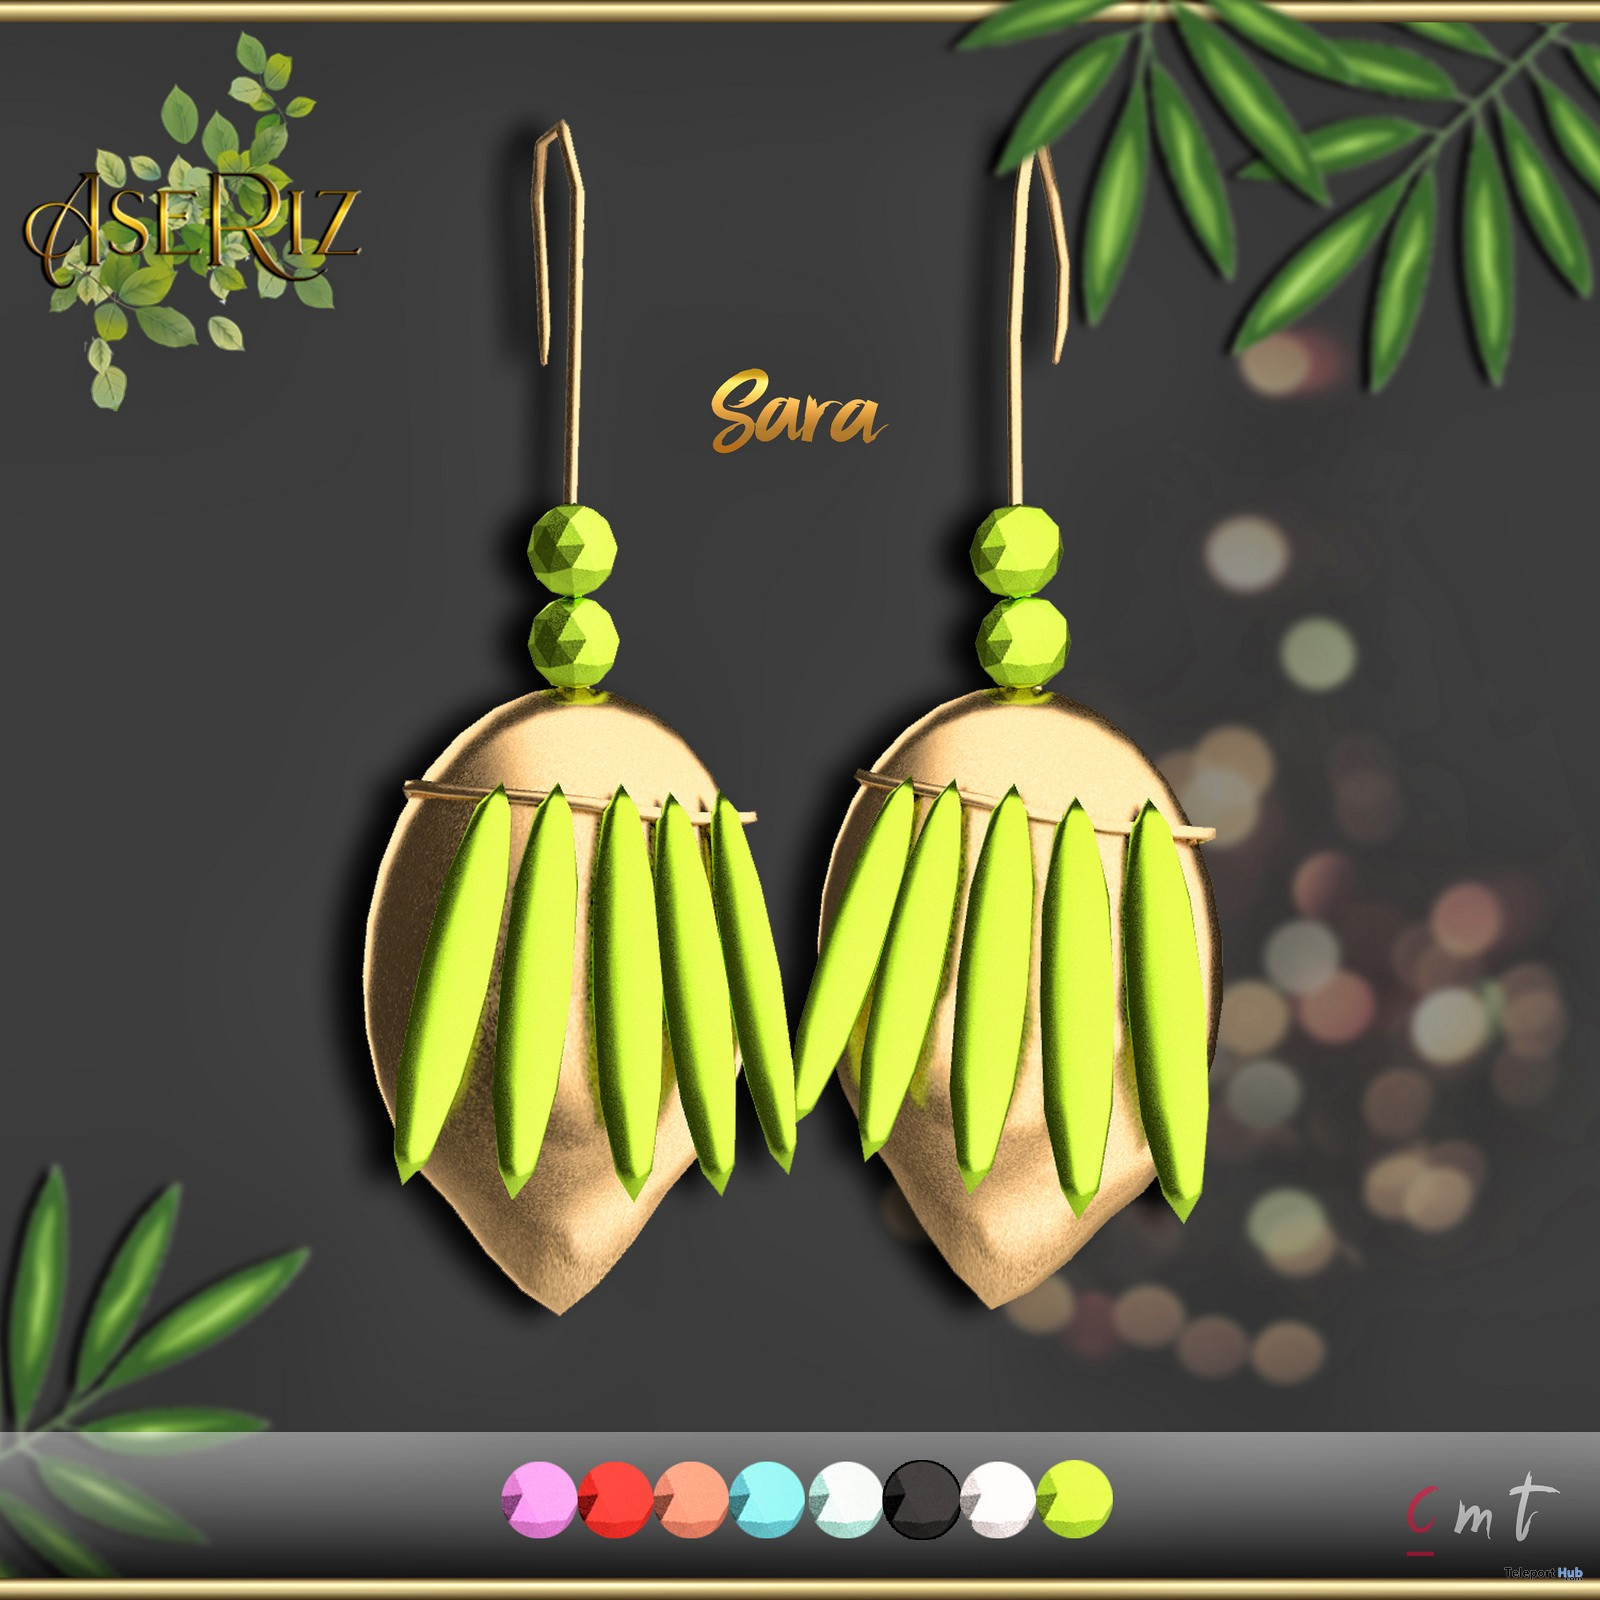 Sara Earring Fatpack 1L Promo by Sara - Teleport Hub - teleporthub.com